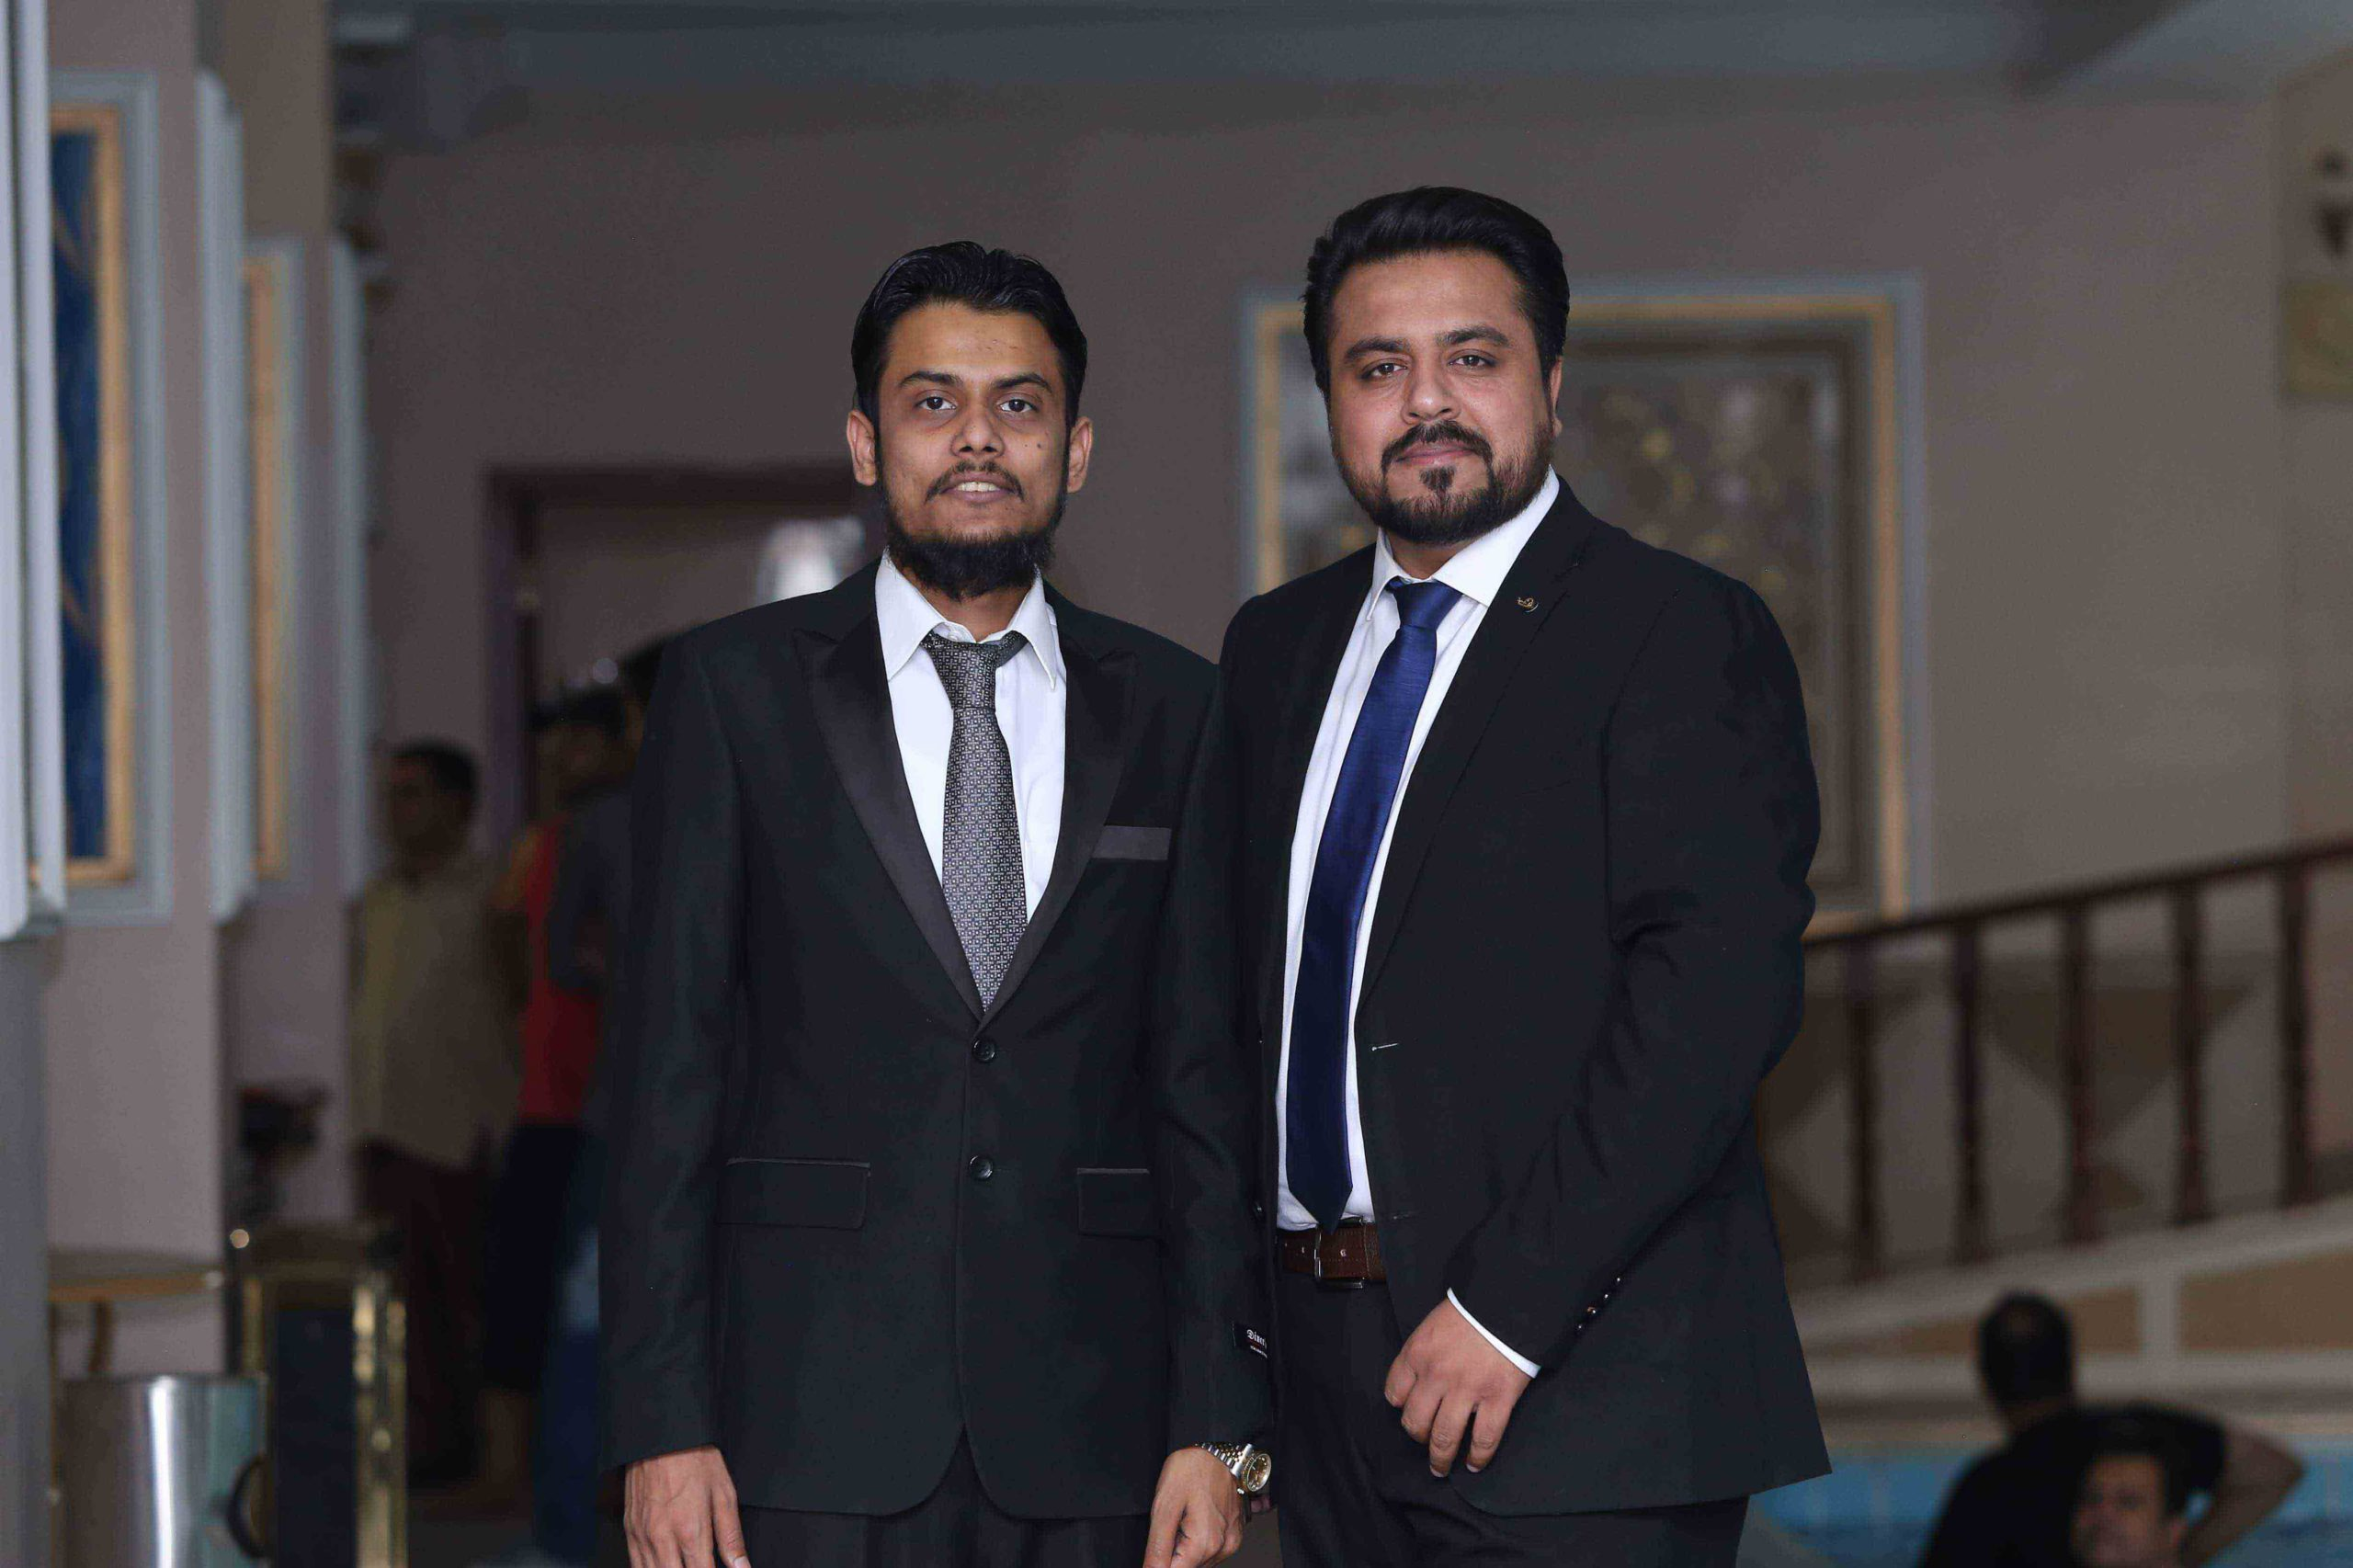 STAFF_ANNUAL_DINNER_&_IFTAR_PARTTY_5